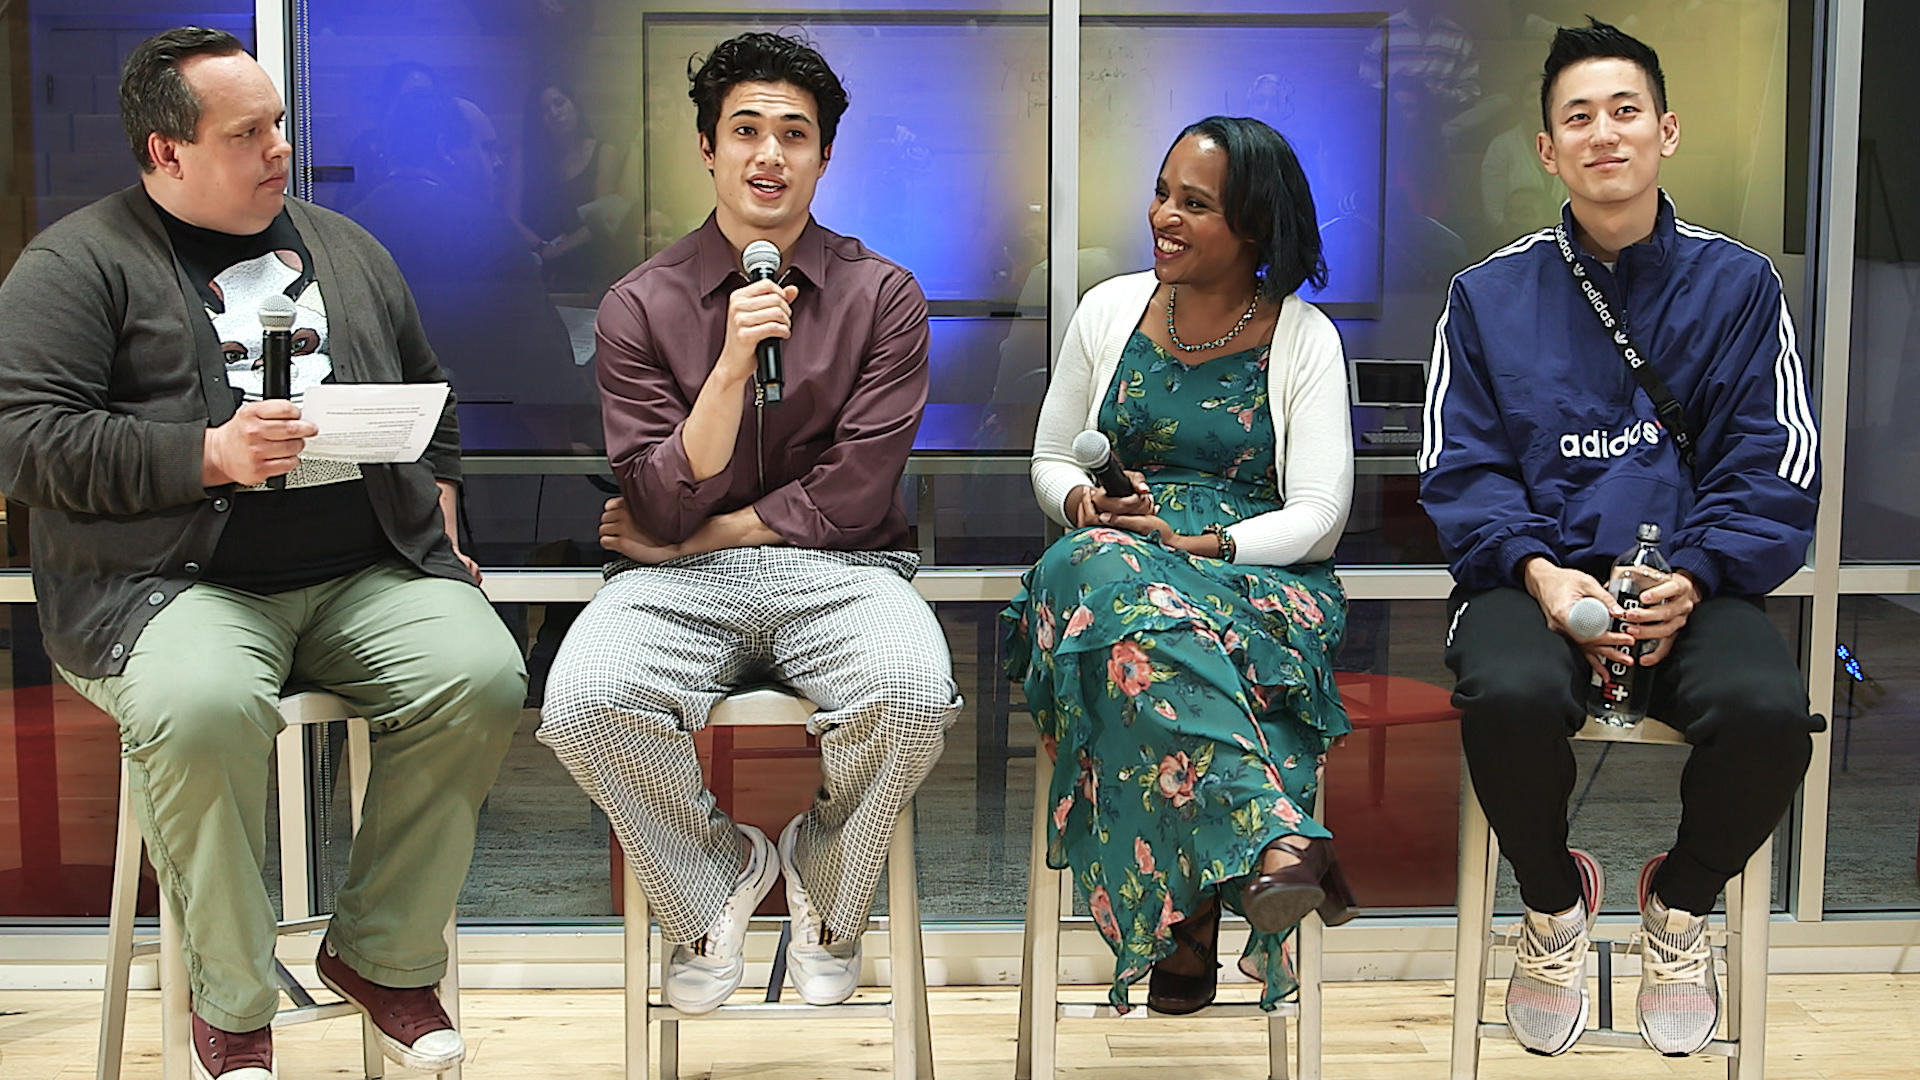 Video: Charles Melton, Jake Choi and Nicola Yoon talk The Sun Is Also A Star